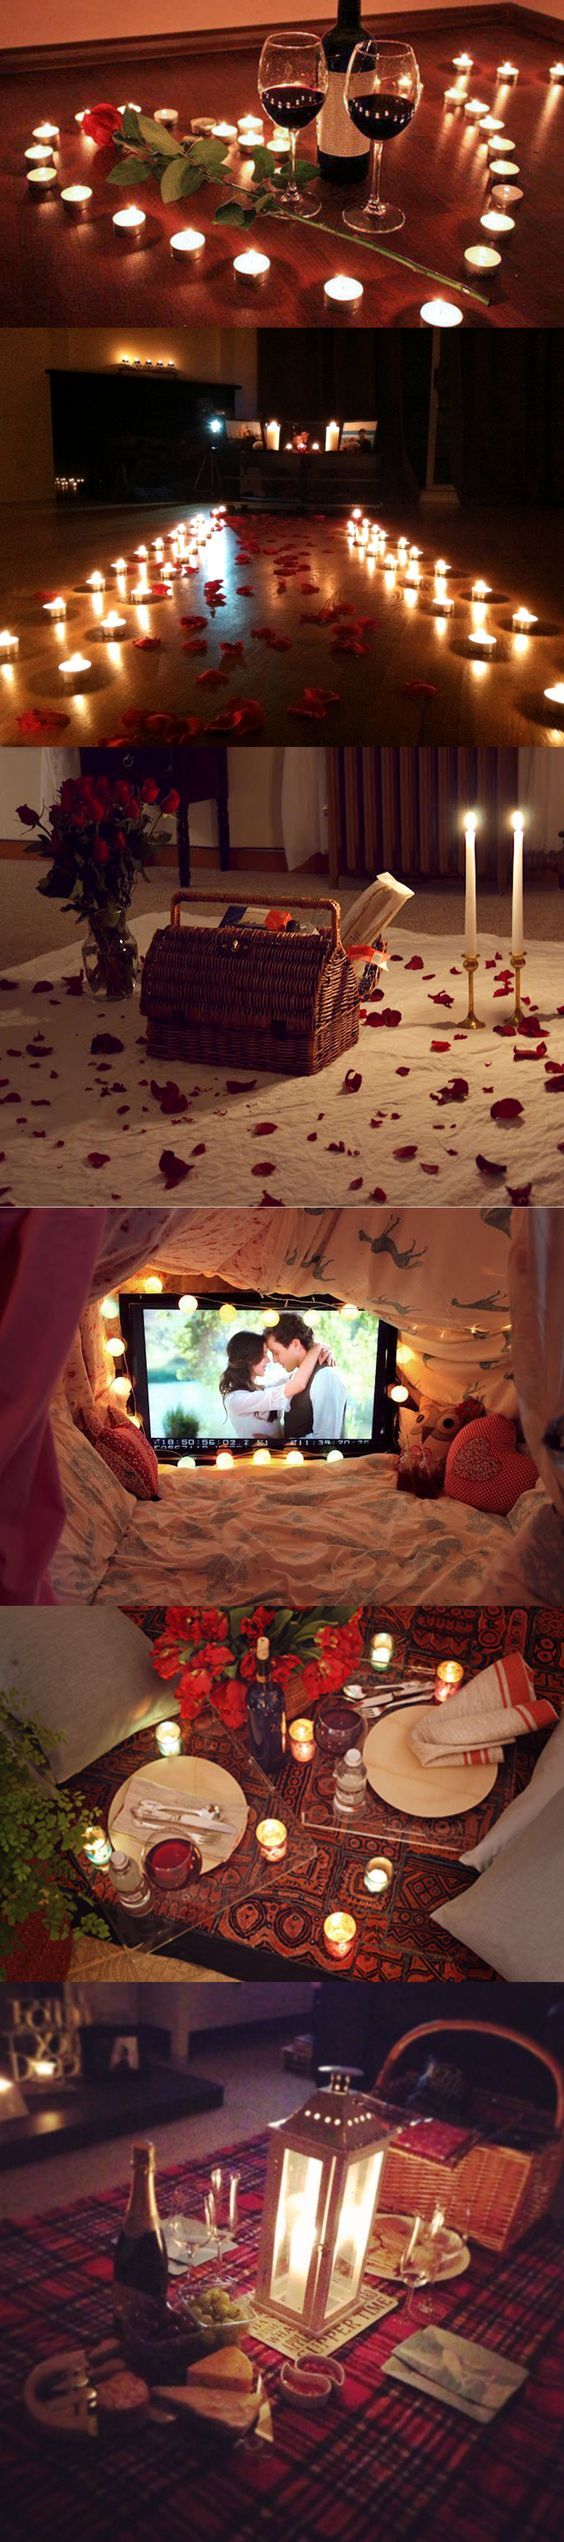 10 Ideal Great Valentines Day Date Ideas valentines day date ideas you will both love diybunker 2021